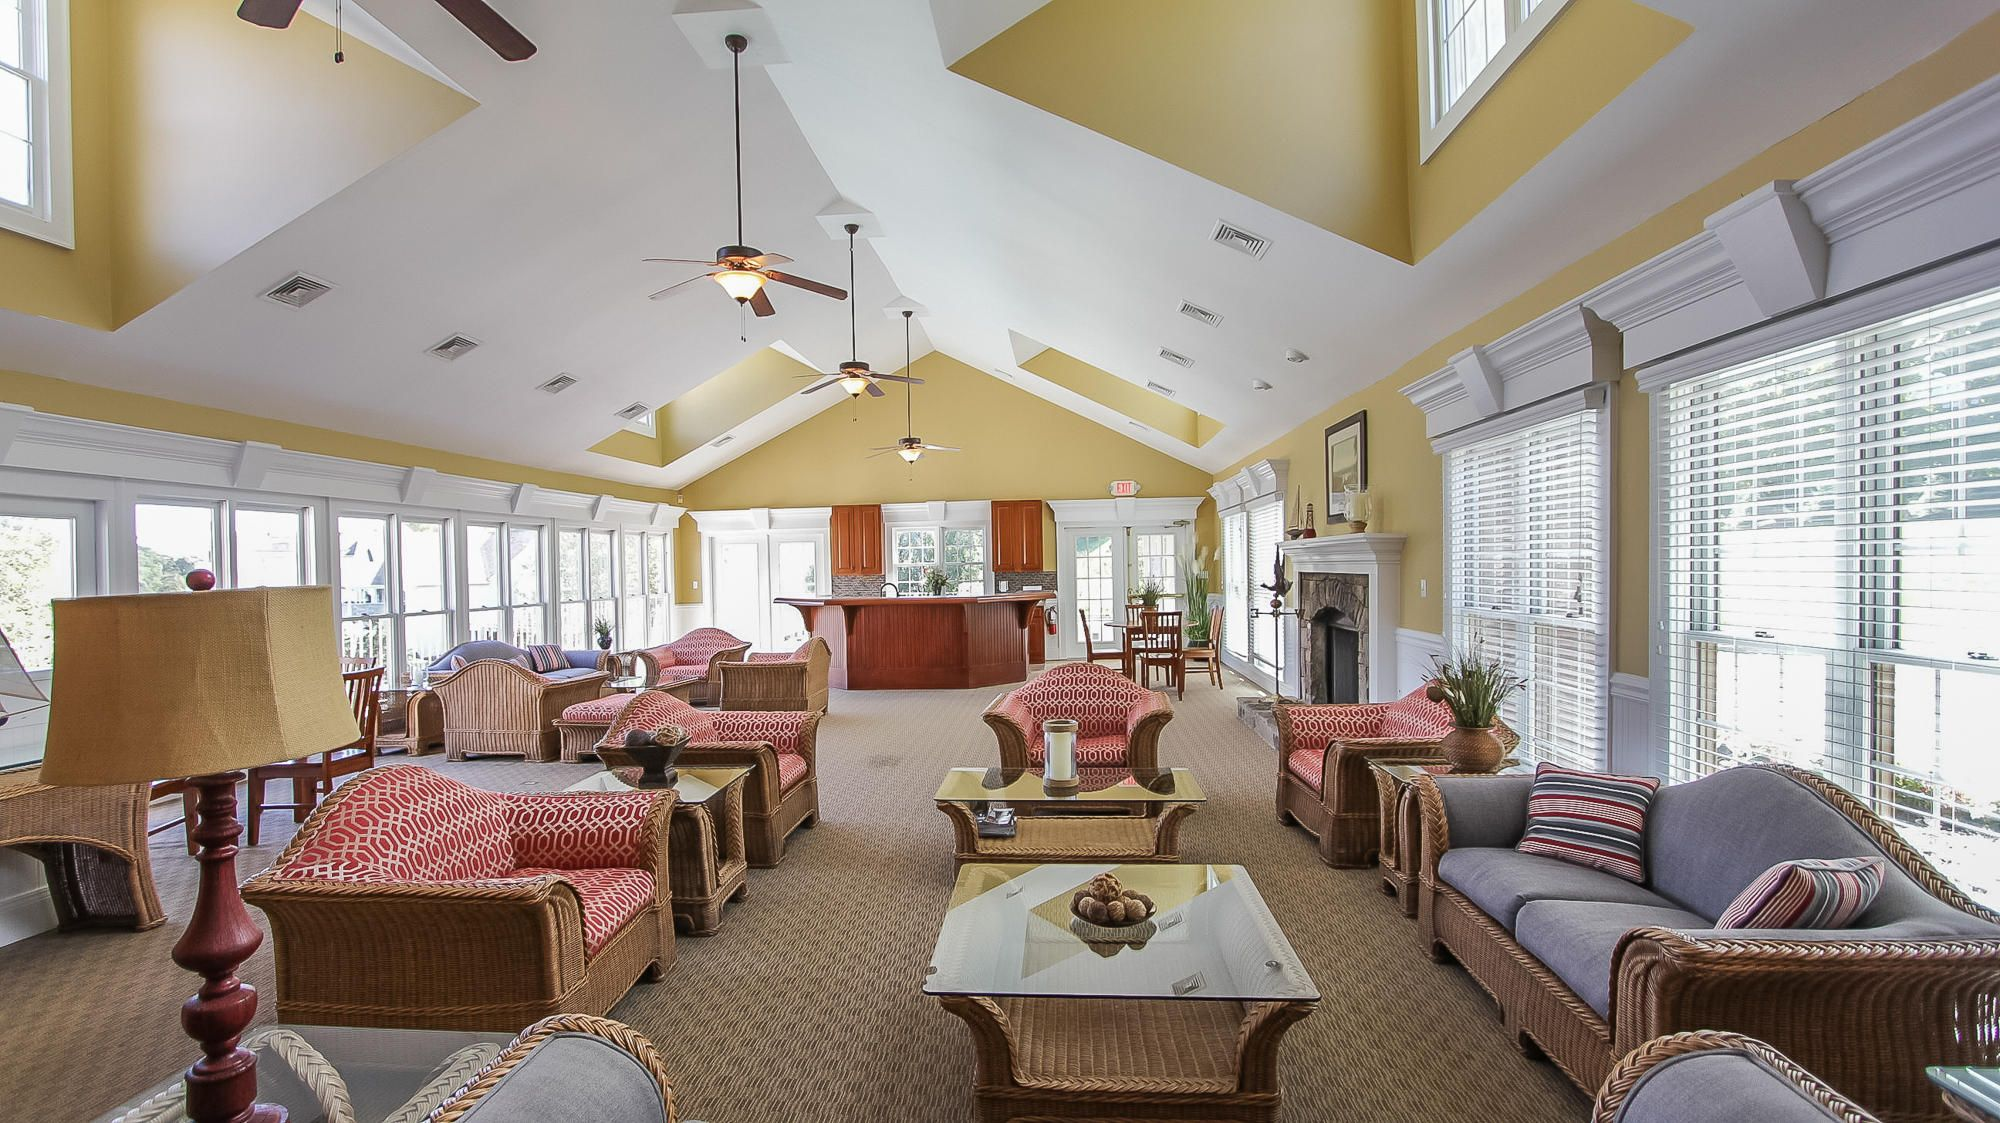 Inside the clubhouse main level.